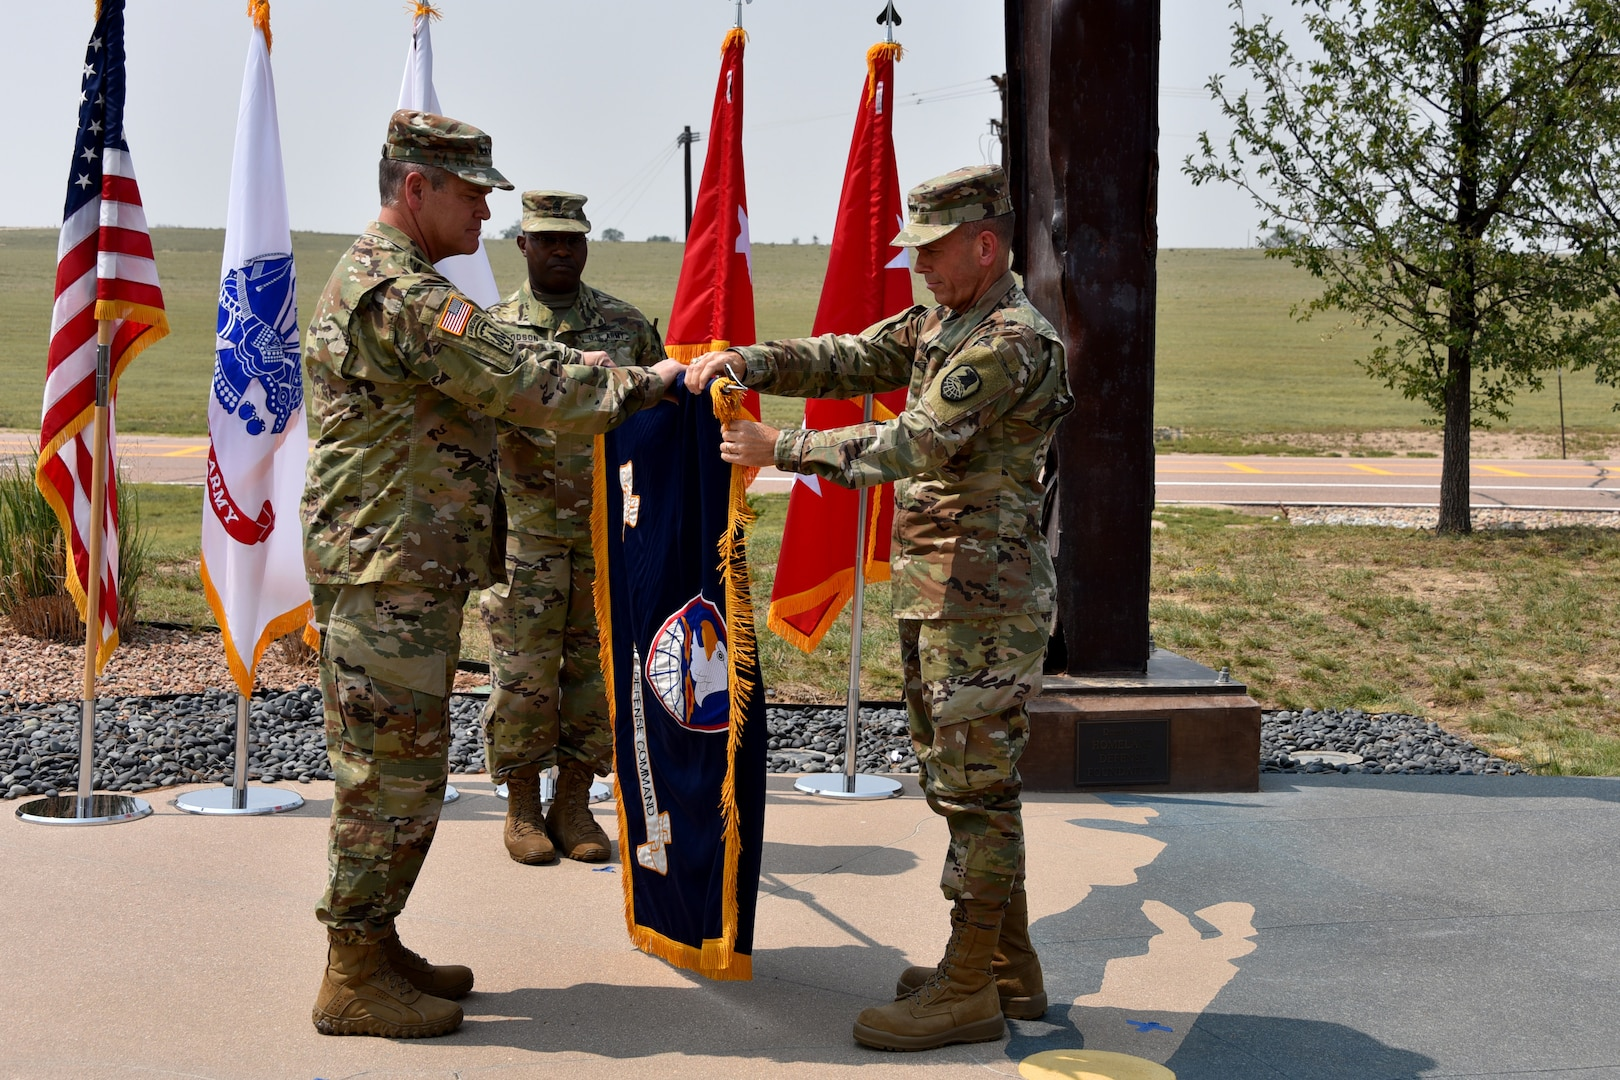 Gen. James H. Dickinson, U.S. Space Command commander, left, and Lt. Gen. Daniel L. Karbler, U.S. Army Space and Missile Defense Command commanding general, unfurl SMDC's colors to officially recognize the command as the Army Service Component Command to USSPACECOM during an. Aug. 21 ceremony at Schriever Air Force Base, Colorado.